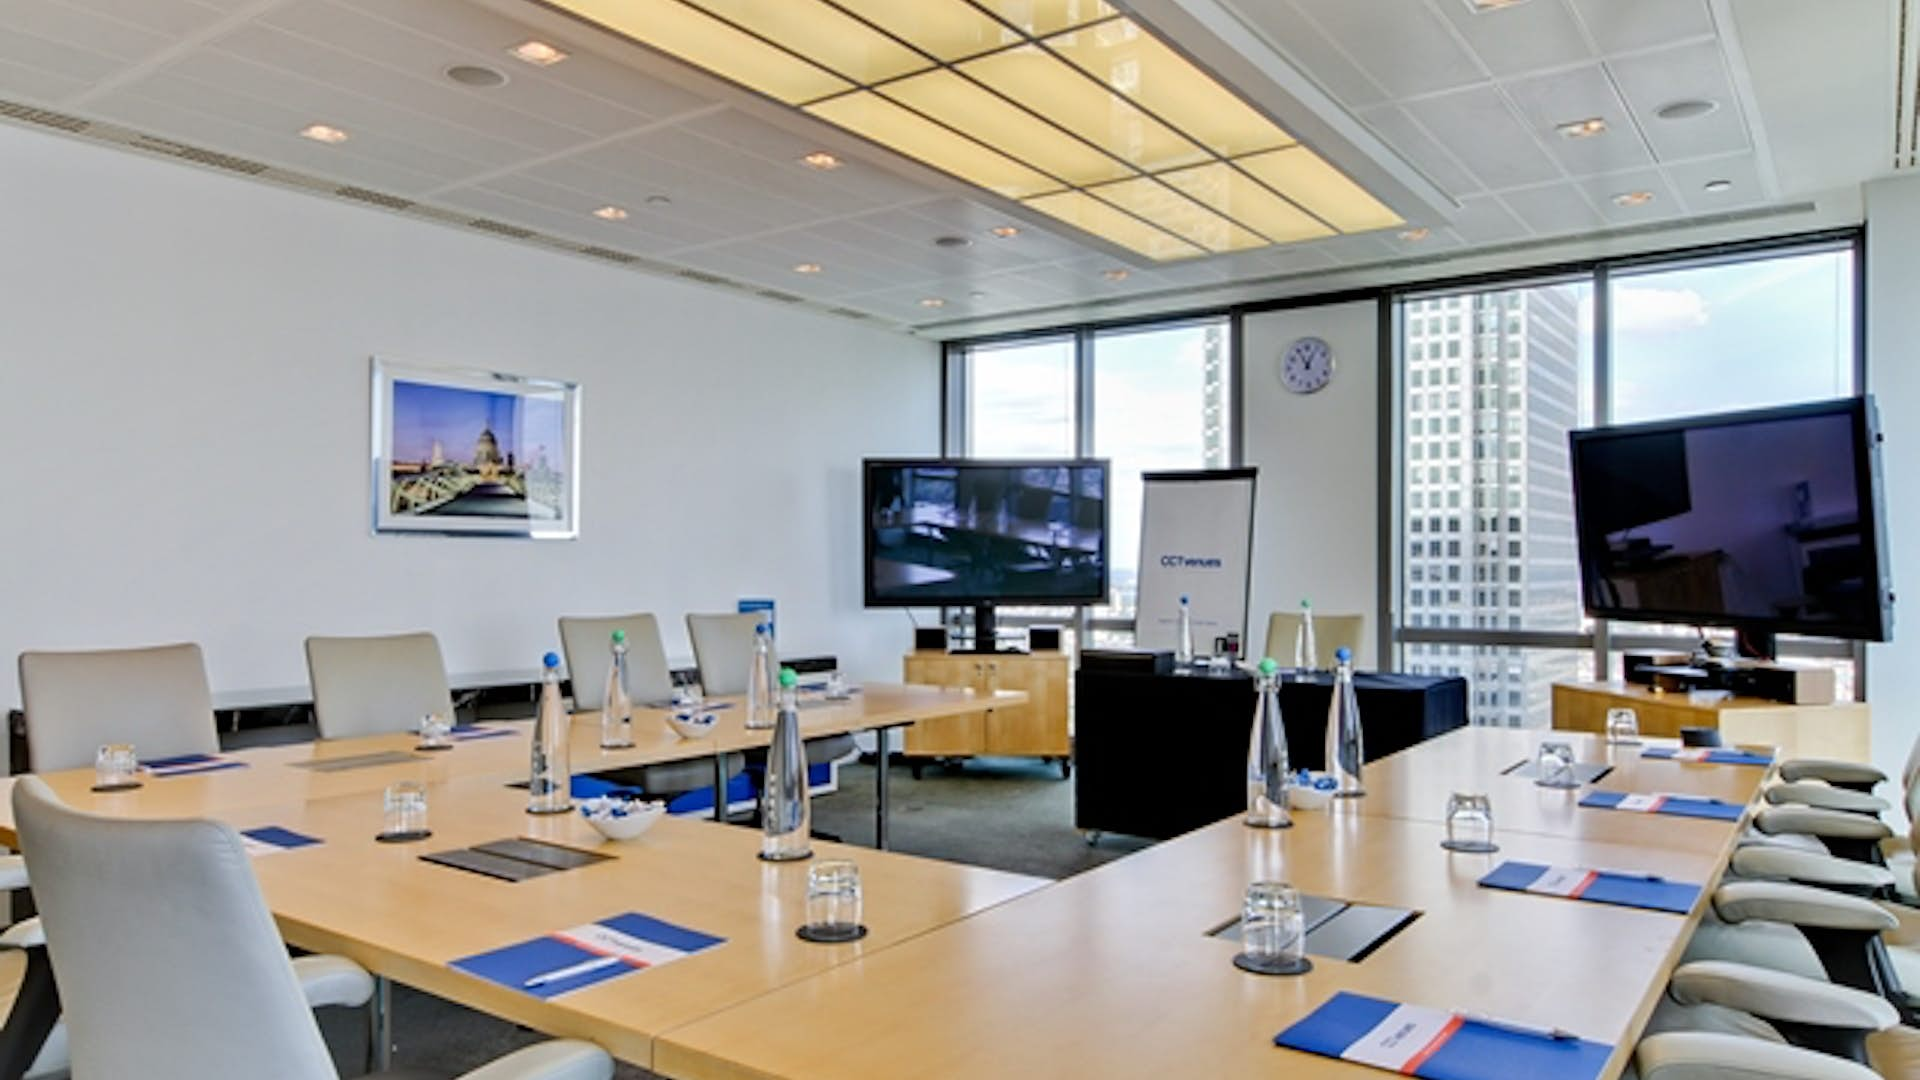 Room 10 | Business | CCT Venues Plus - Bank Street (Canary